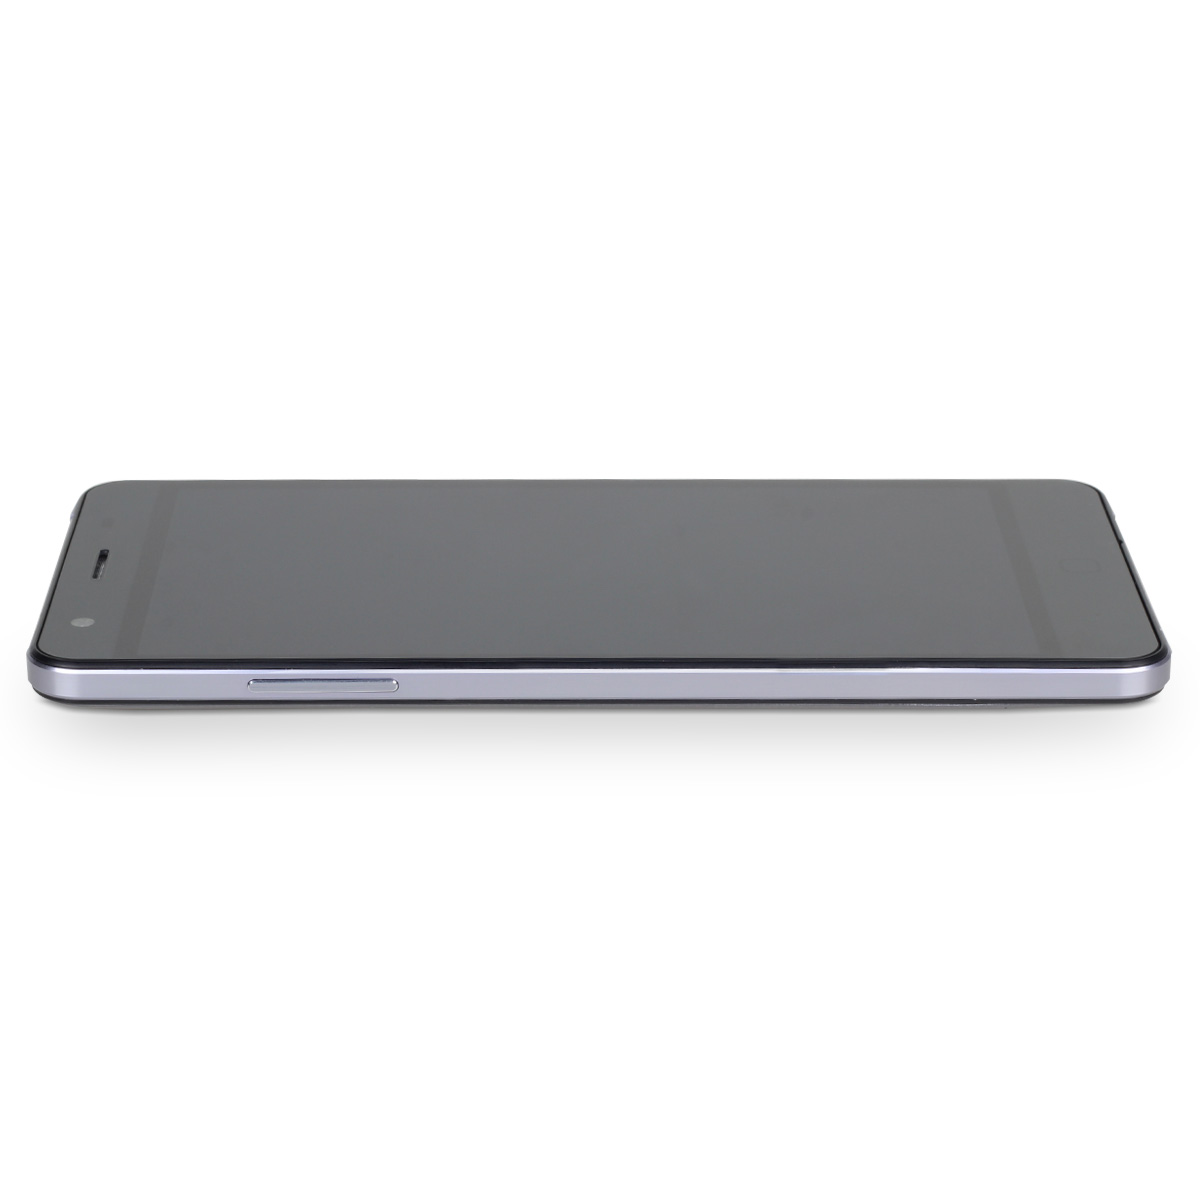 Elephone P7000 Pioneer Smartphone Touch ID 3GB 16GB 64bit MTK6752 5.5'' FHD Gray